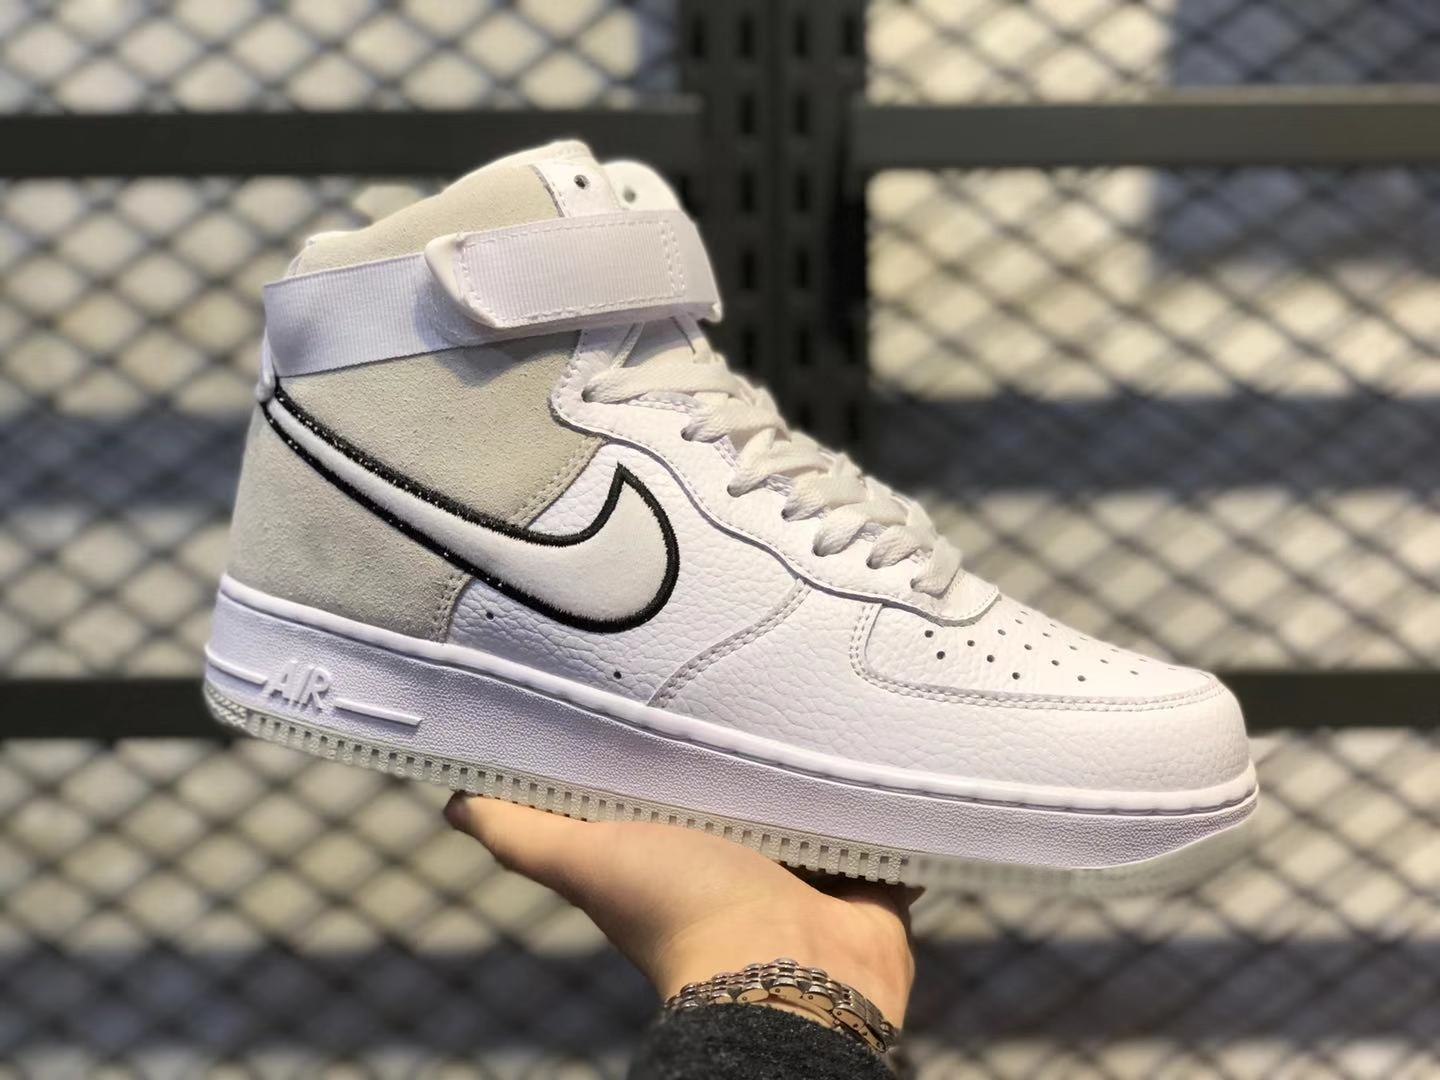 New This Year Nike Air Force 1 High White/Vast Grey-Black AO2442-100